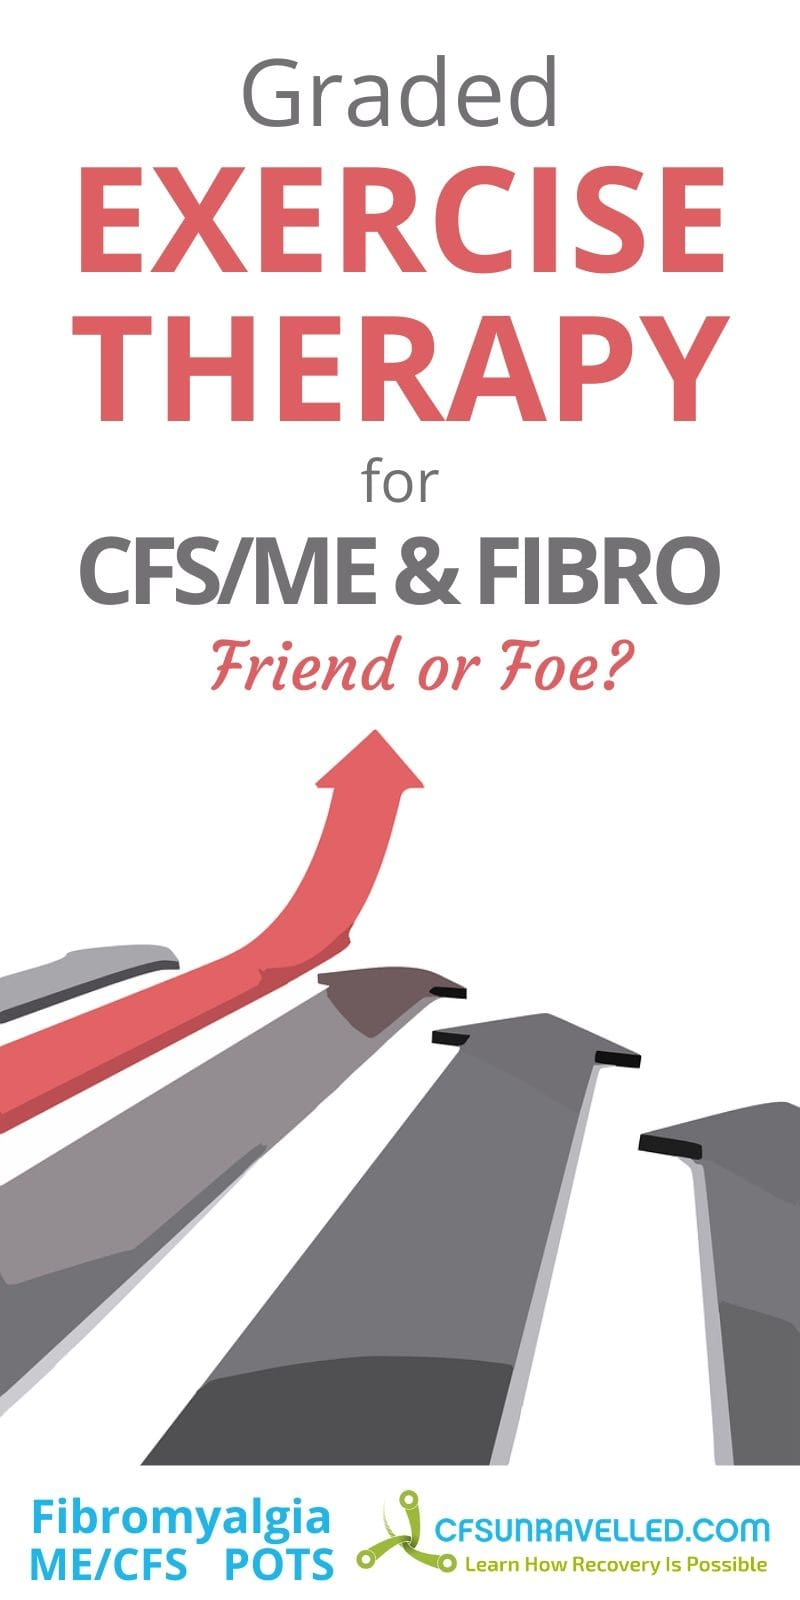 Gray and red arrow as graded exercise therapy for CFSME and Fibromyalgia